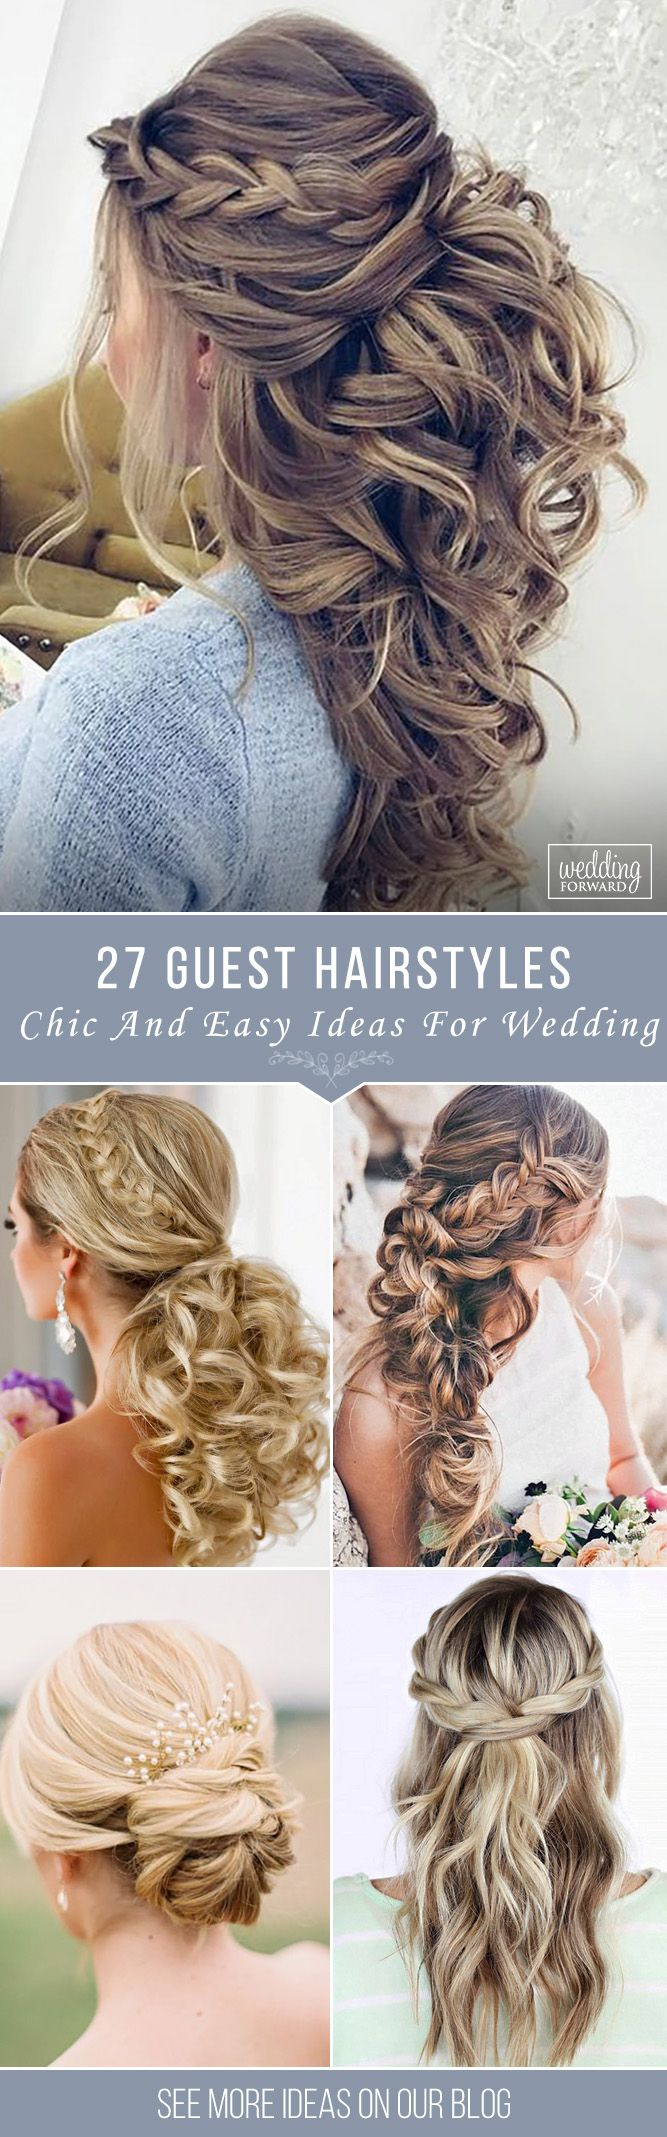 27 Chic And Easy Wedding Guest Hairstyles ❤ Wedding guest hairstyles should be...